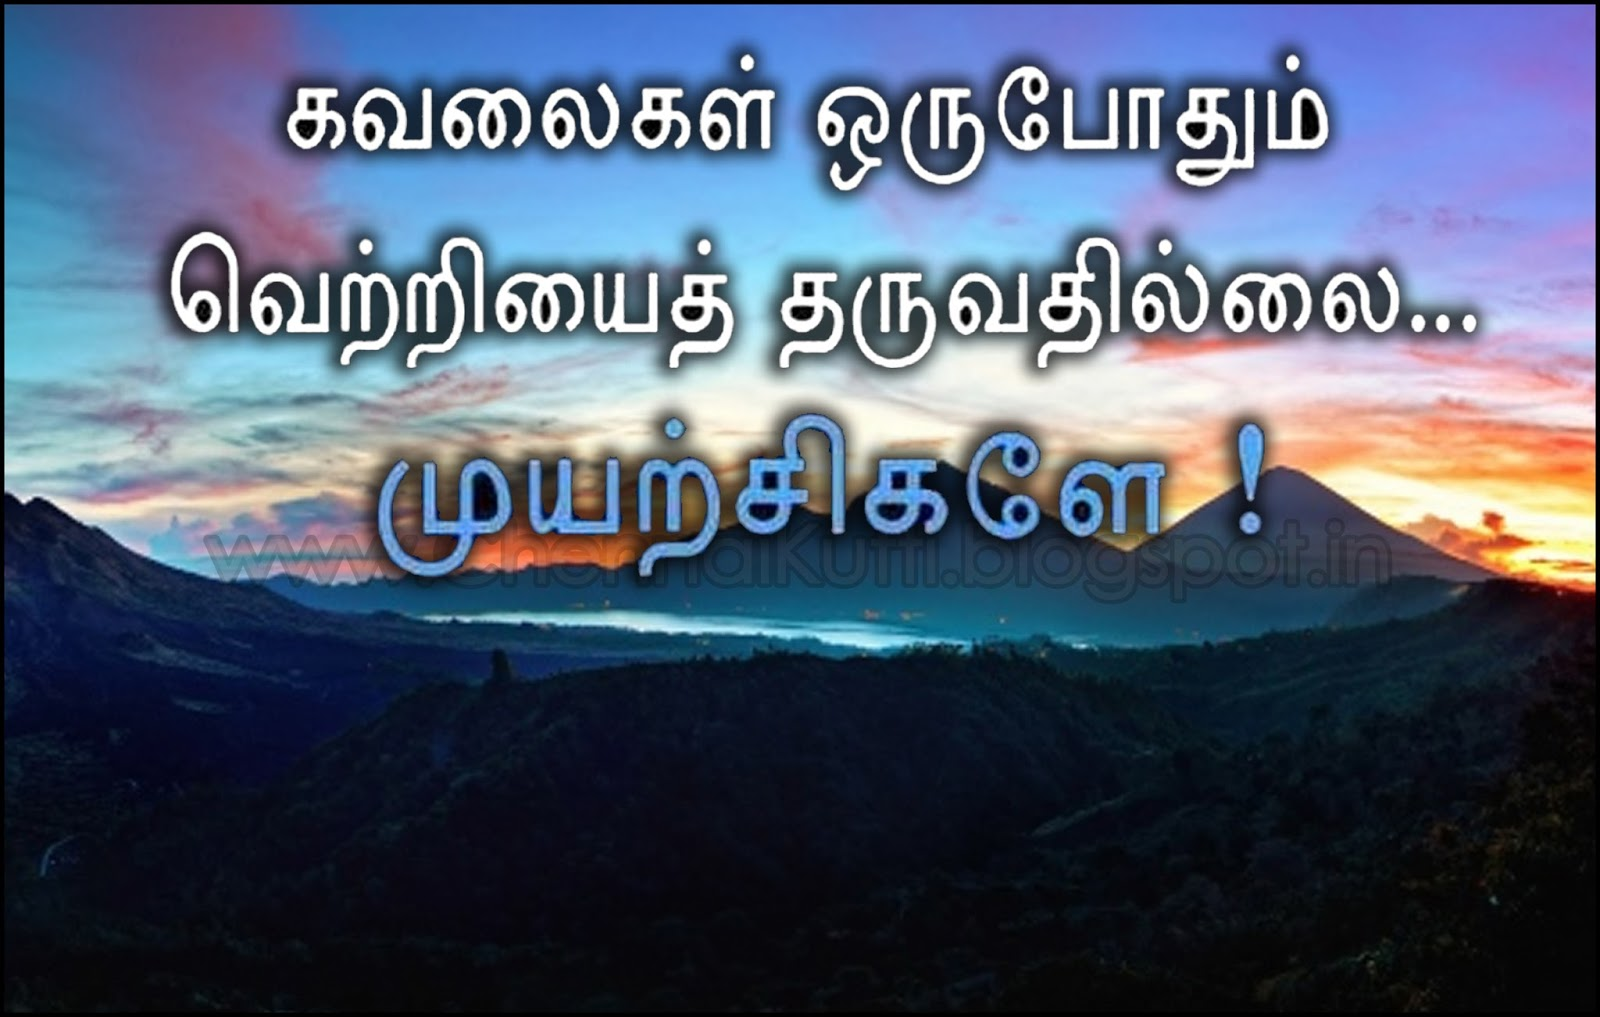 Tamil Quotes Images Wishes Greetings Wallpapers Pictures Free